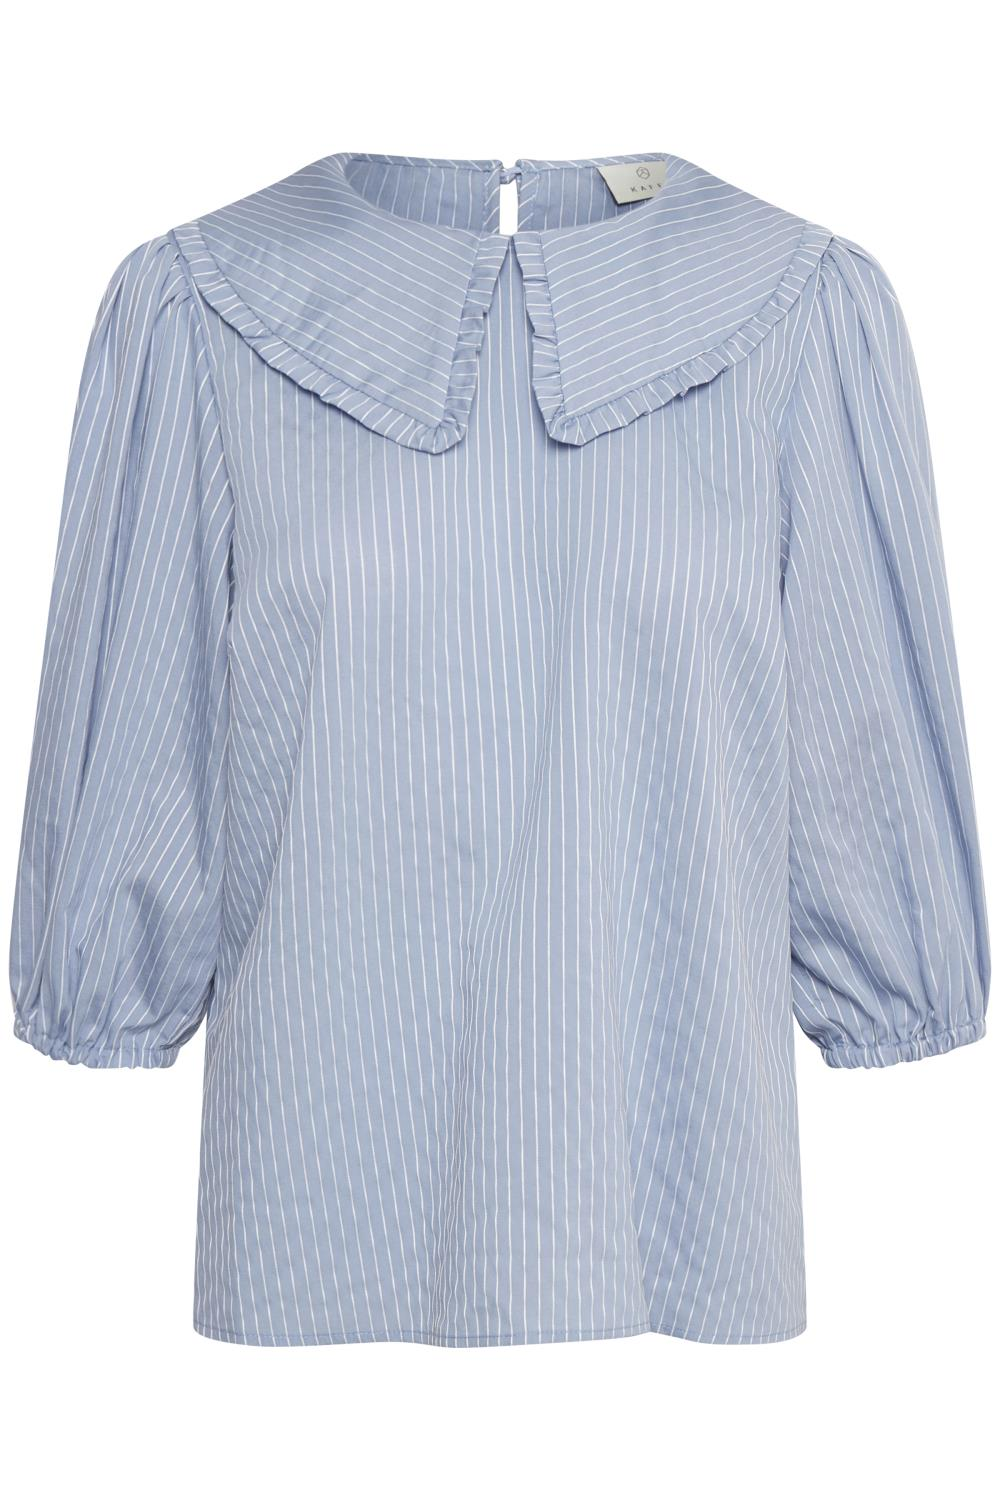 Kaffe Gabriella blouse, chambray stripe